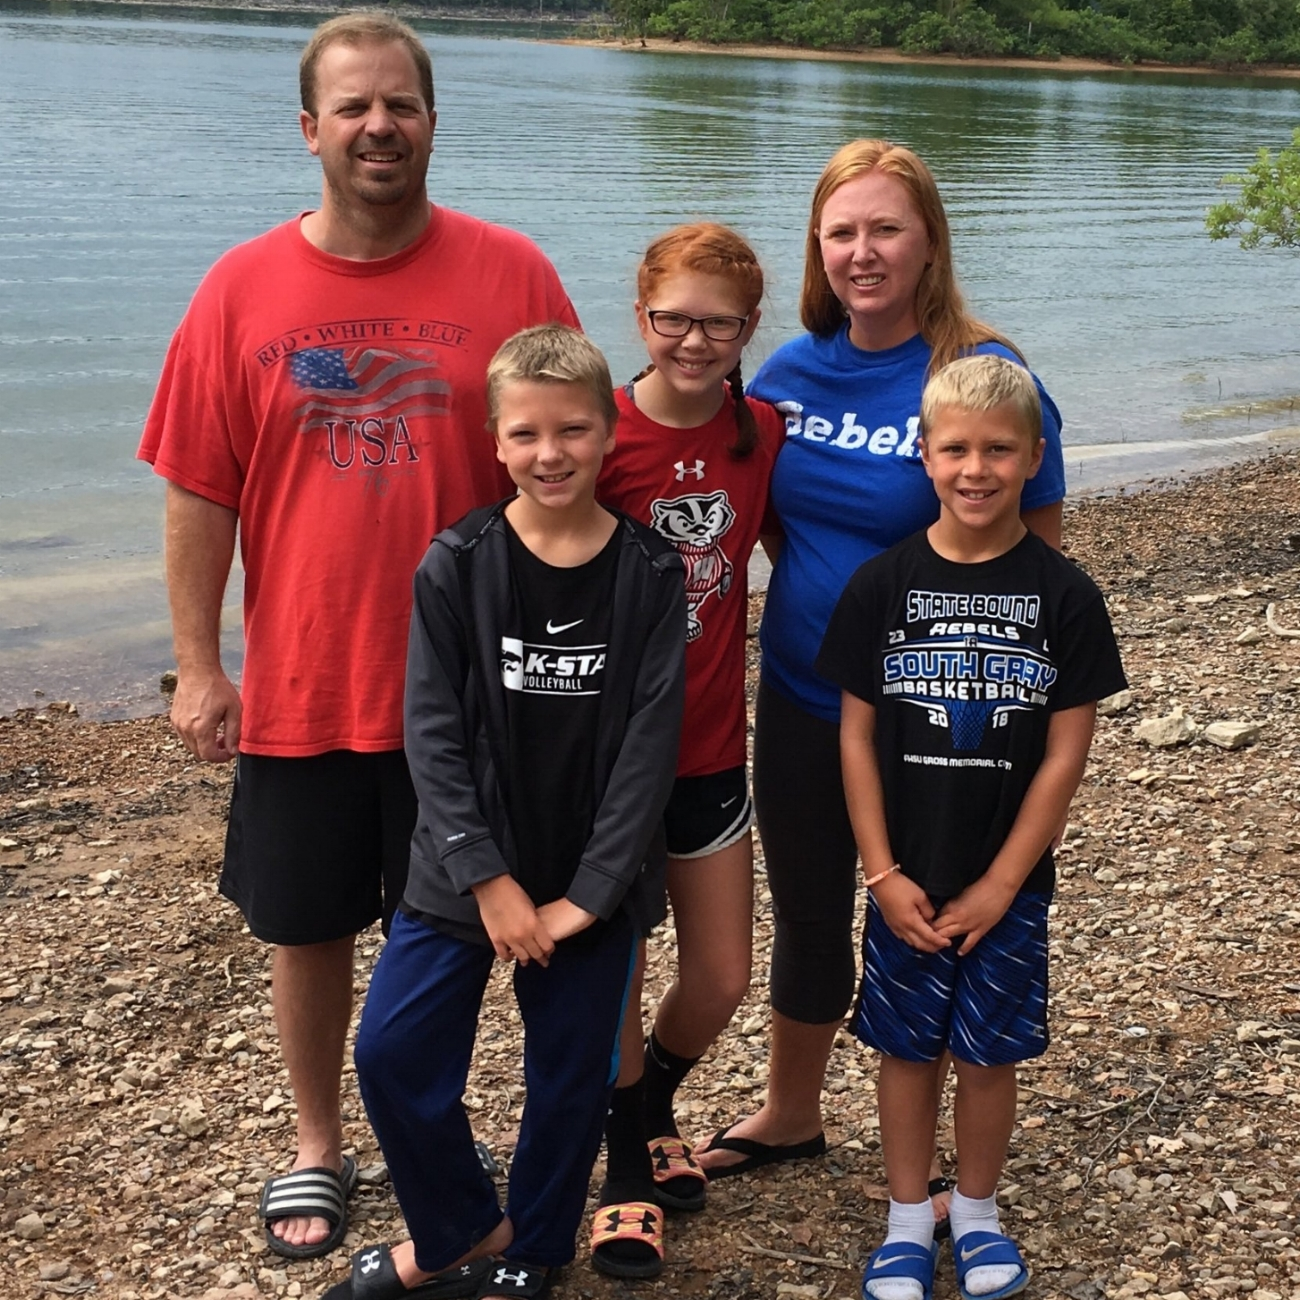 Mrs. Moyer -  I grew up in Bucklin.  I studied for my bachelors in elementary education at Fort Hays State.  I taught for 7 years before staying home with my babies.  My family moved to Montezuma in 2017.  My husband, Rick, and I have 3 children Kaylee (7th grade), Eli (4th grade), and Isaac (3rd grade).  This will be my 12th year of teaching.  I have taught anything from kindergarten to 3rd grade. I am excited to teach 3rd, 4th, and 5th Grade Math.